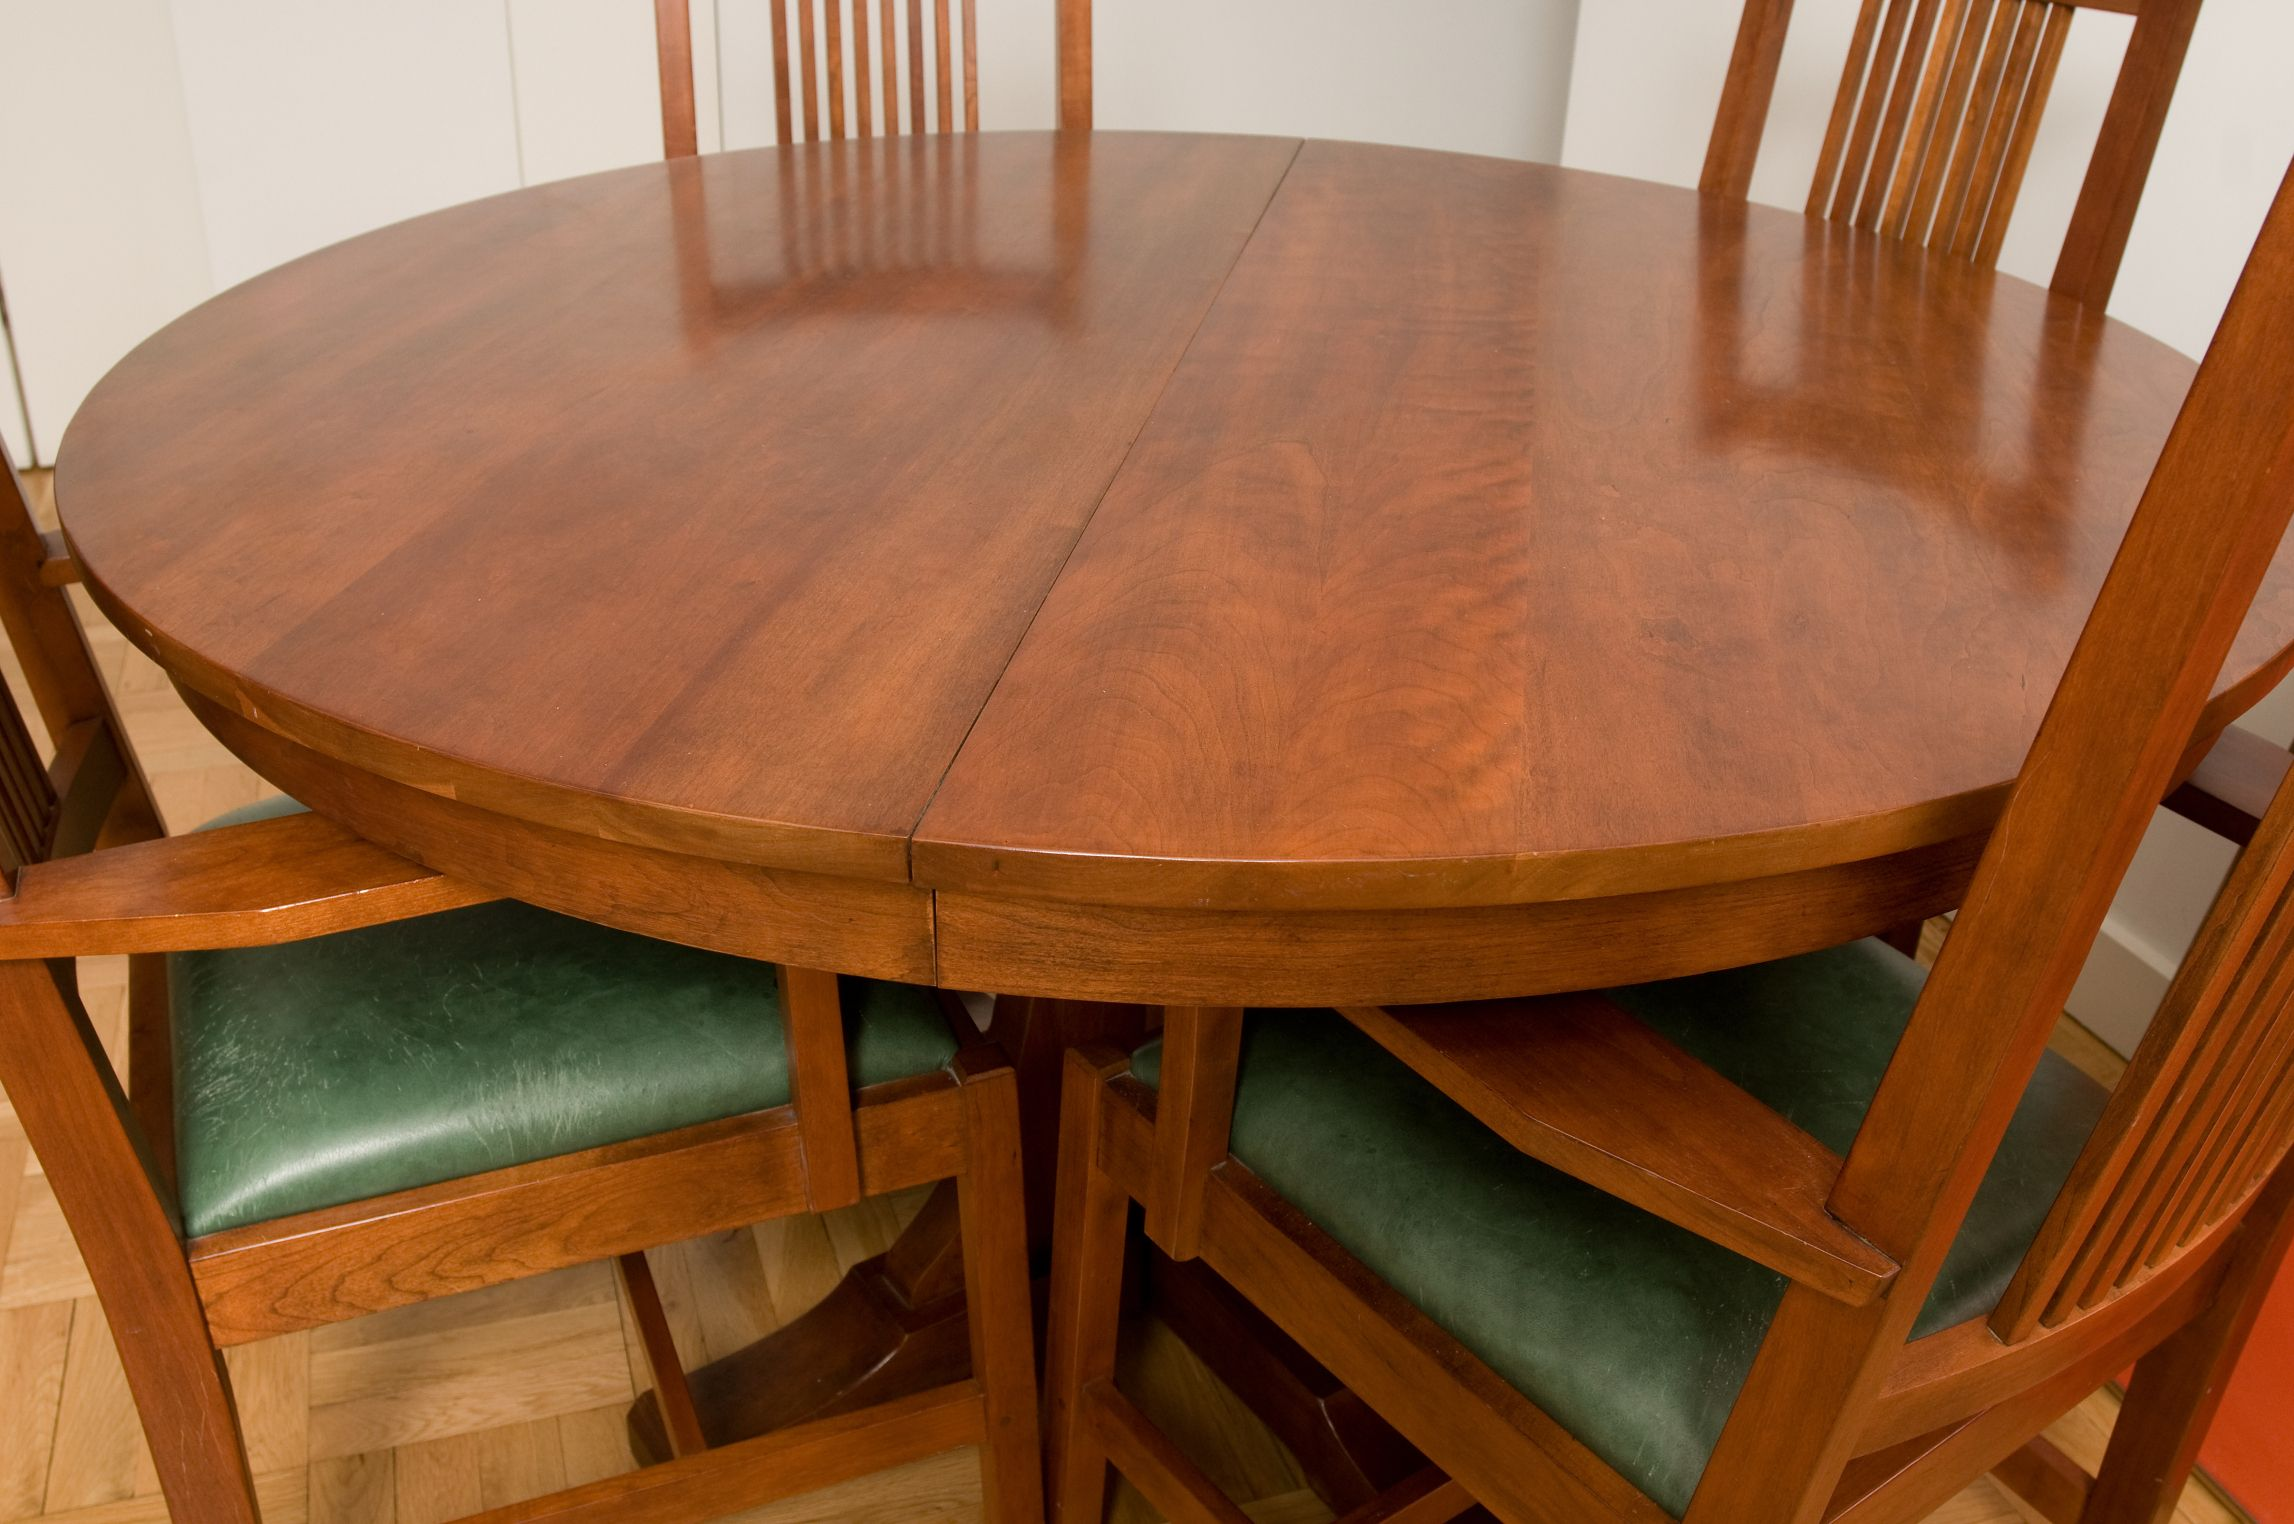 How to Refinish a Veneer Table Top   Refinishing kitchen ...